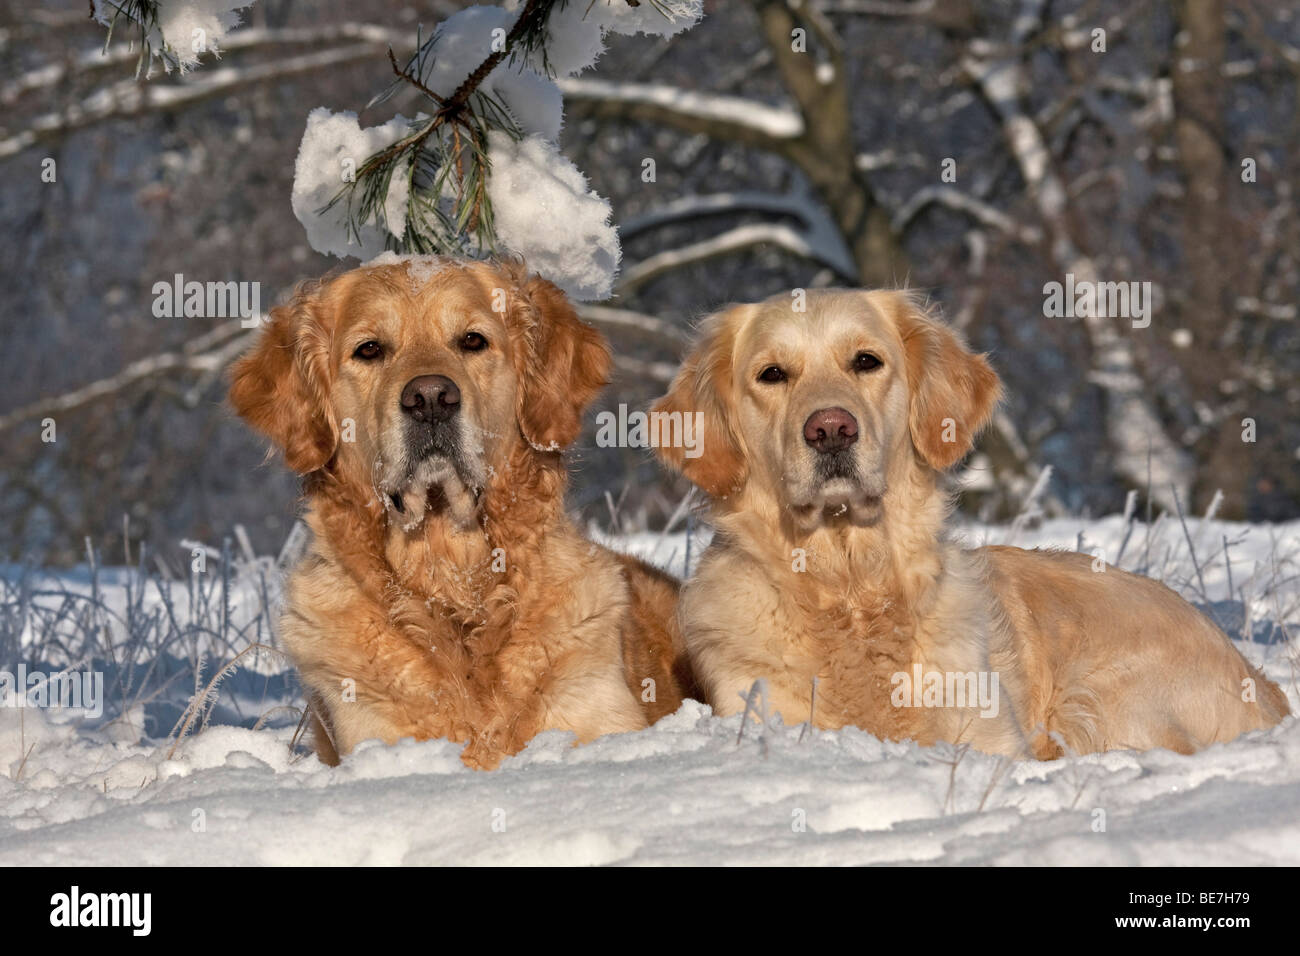 Two Golden Retrievers lying in the snow - Stock Image